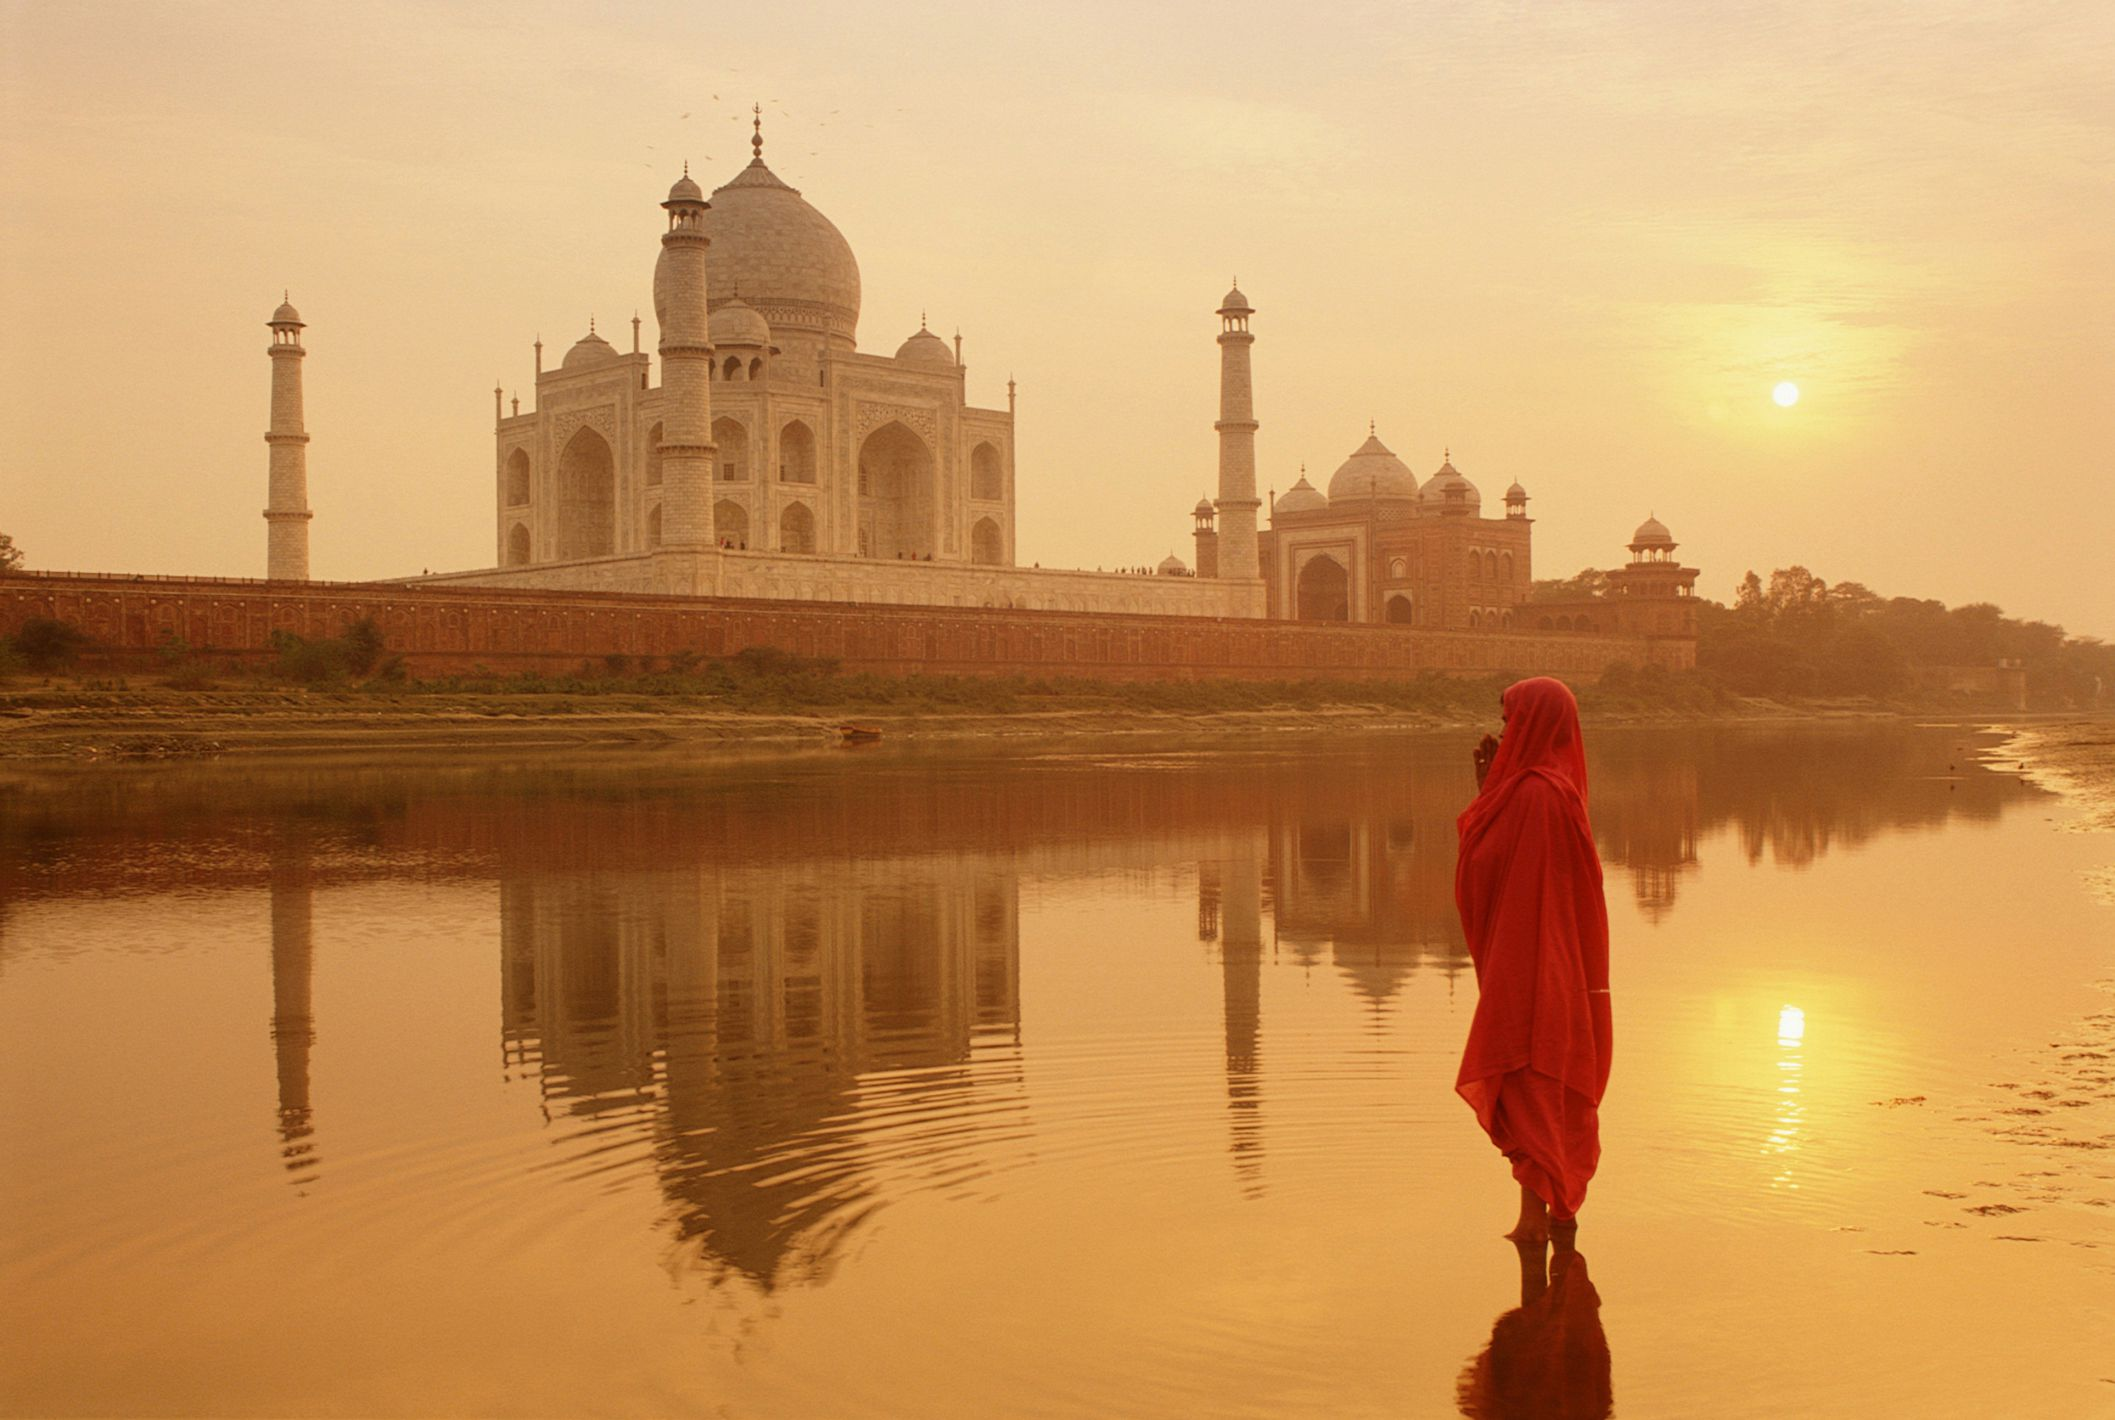 Central Auto Body >> The Taj Mahal in India: What to Know Before You Go